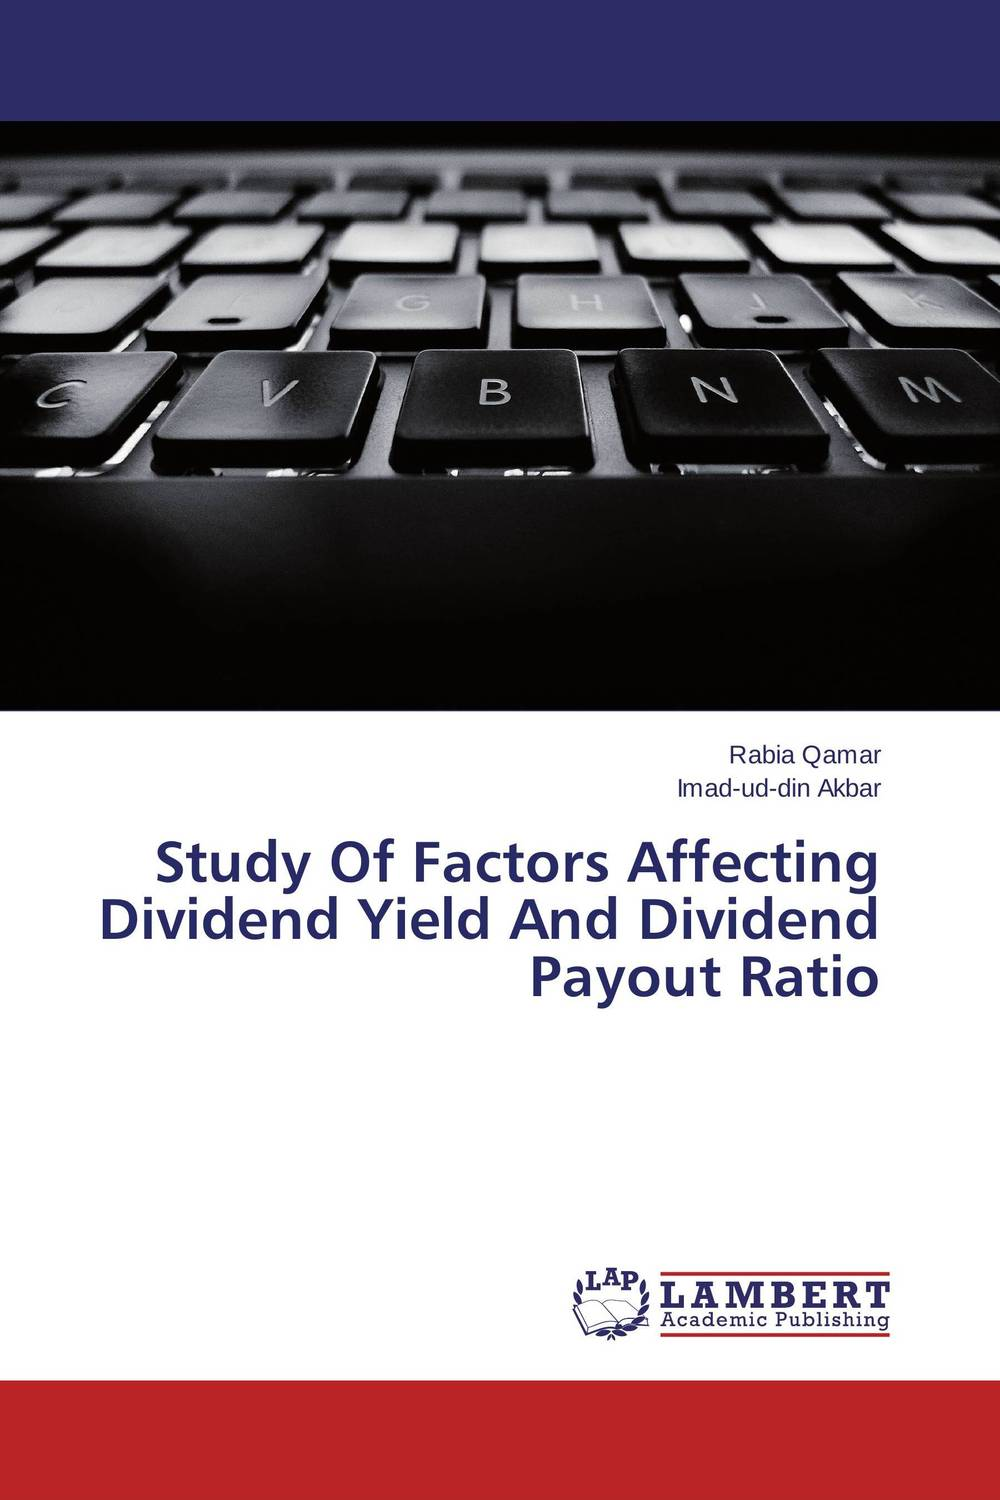 купить Study Of Factors Affecting Dividend Yield And Dividend Payout Ratio недорого